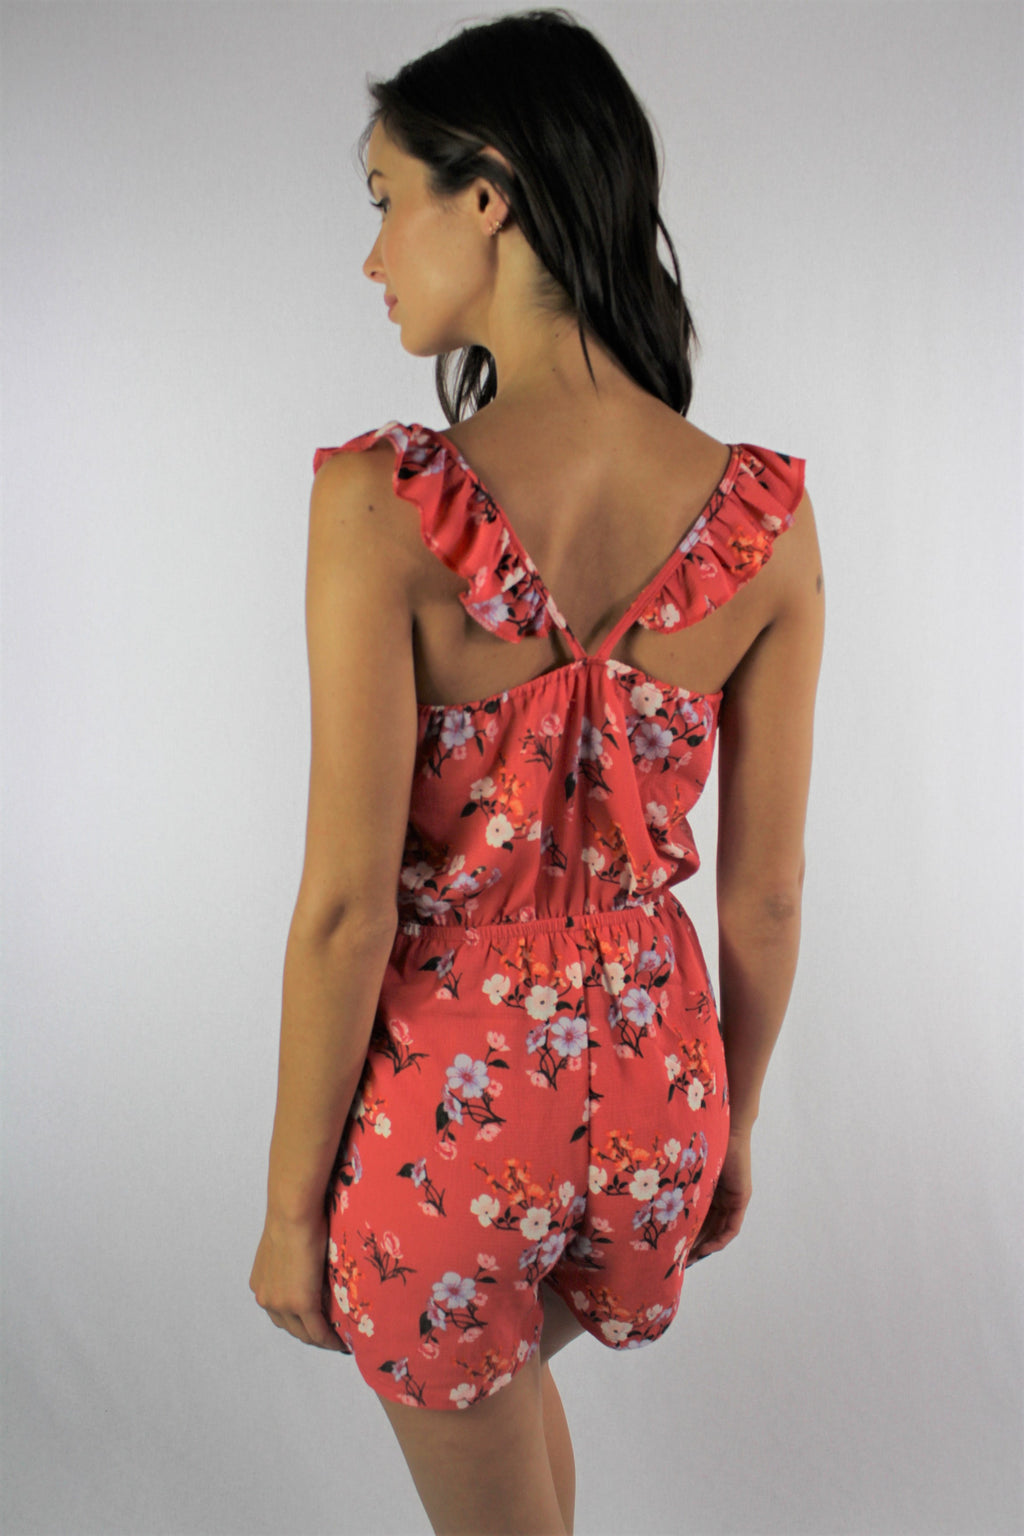 Women's Strappy Floral Romper with String Waist